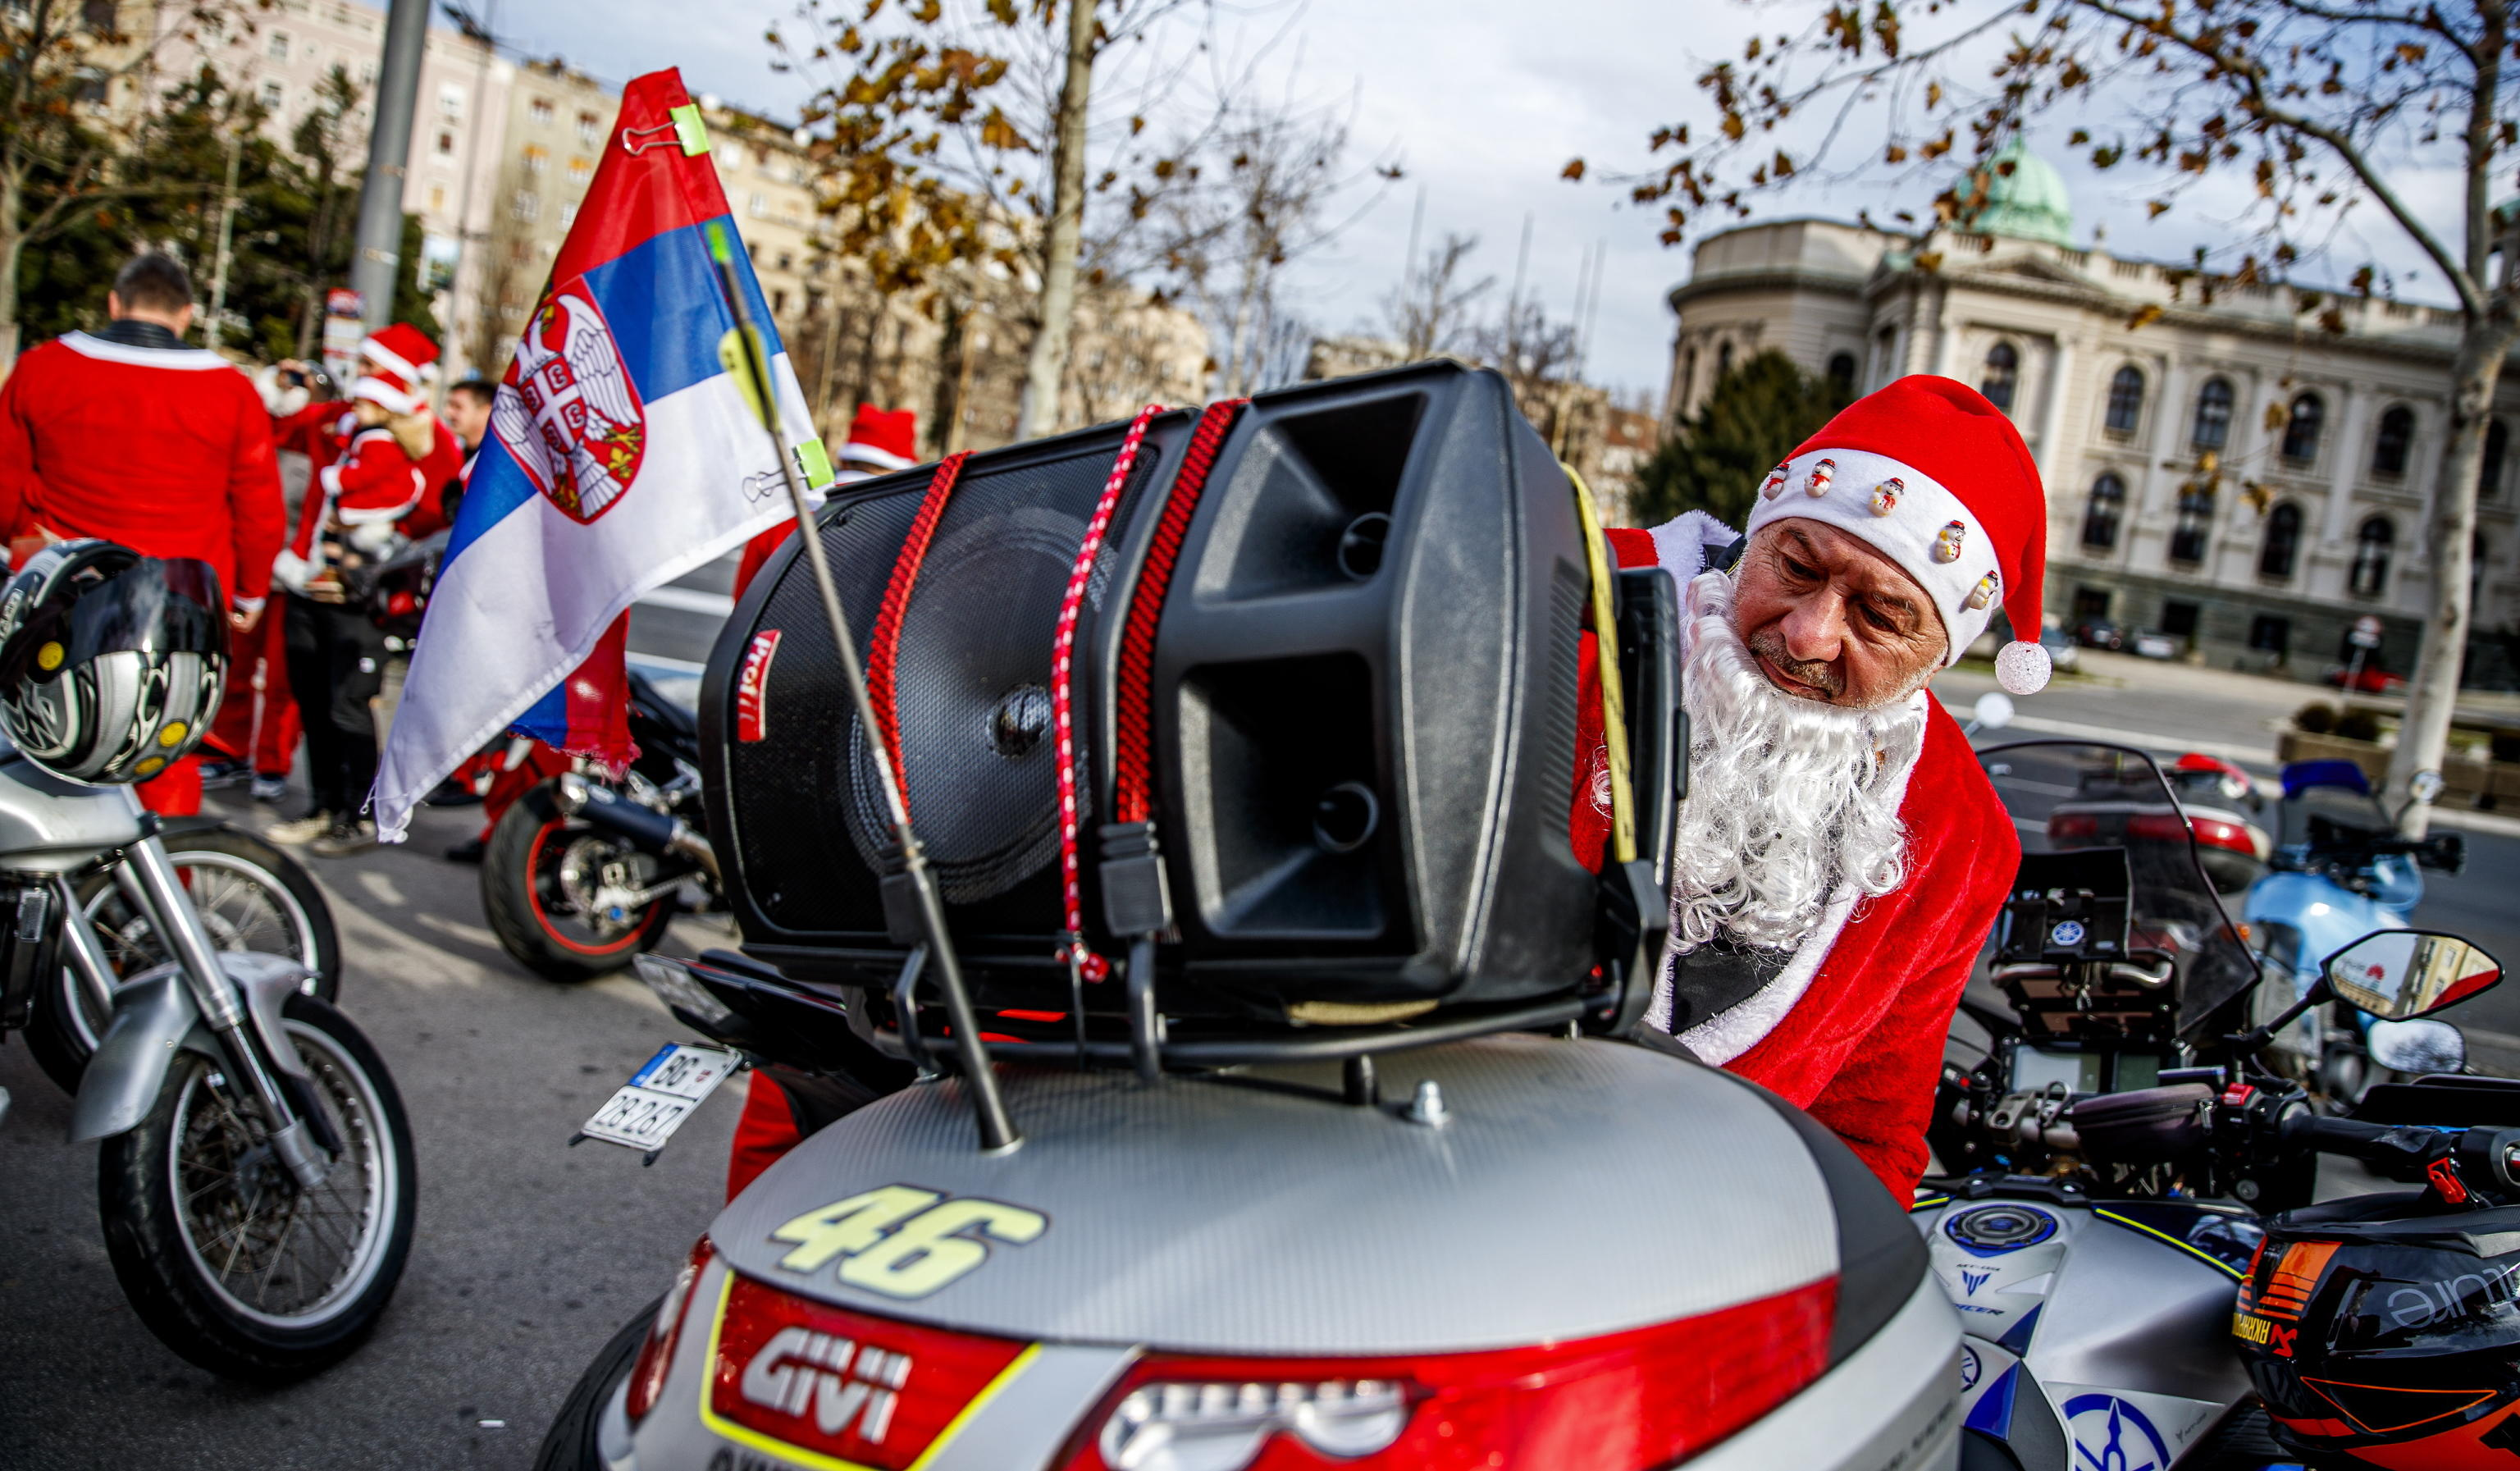 epa08084754 A Serbian motorcyclist dressed in Santa costume gets ready for a drive in Belgrade, Serbia, 21 December 2019. A group of Serbian motorcycle enthusiasts gathered in the Serbian capital for a joint ride to the bring Christmas gifts for underprivileged children.  EPA/SRDJAN SUKI